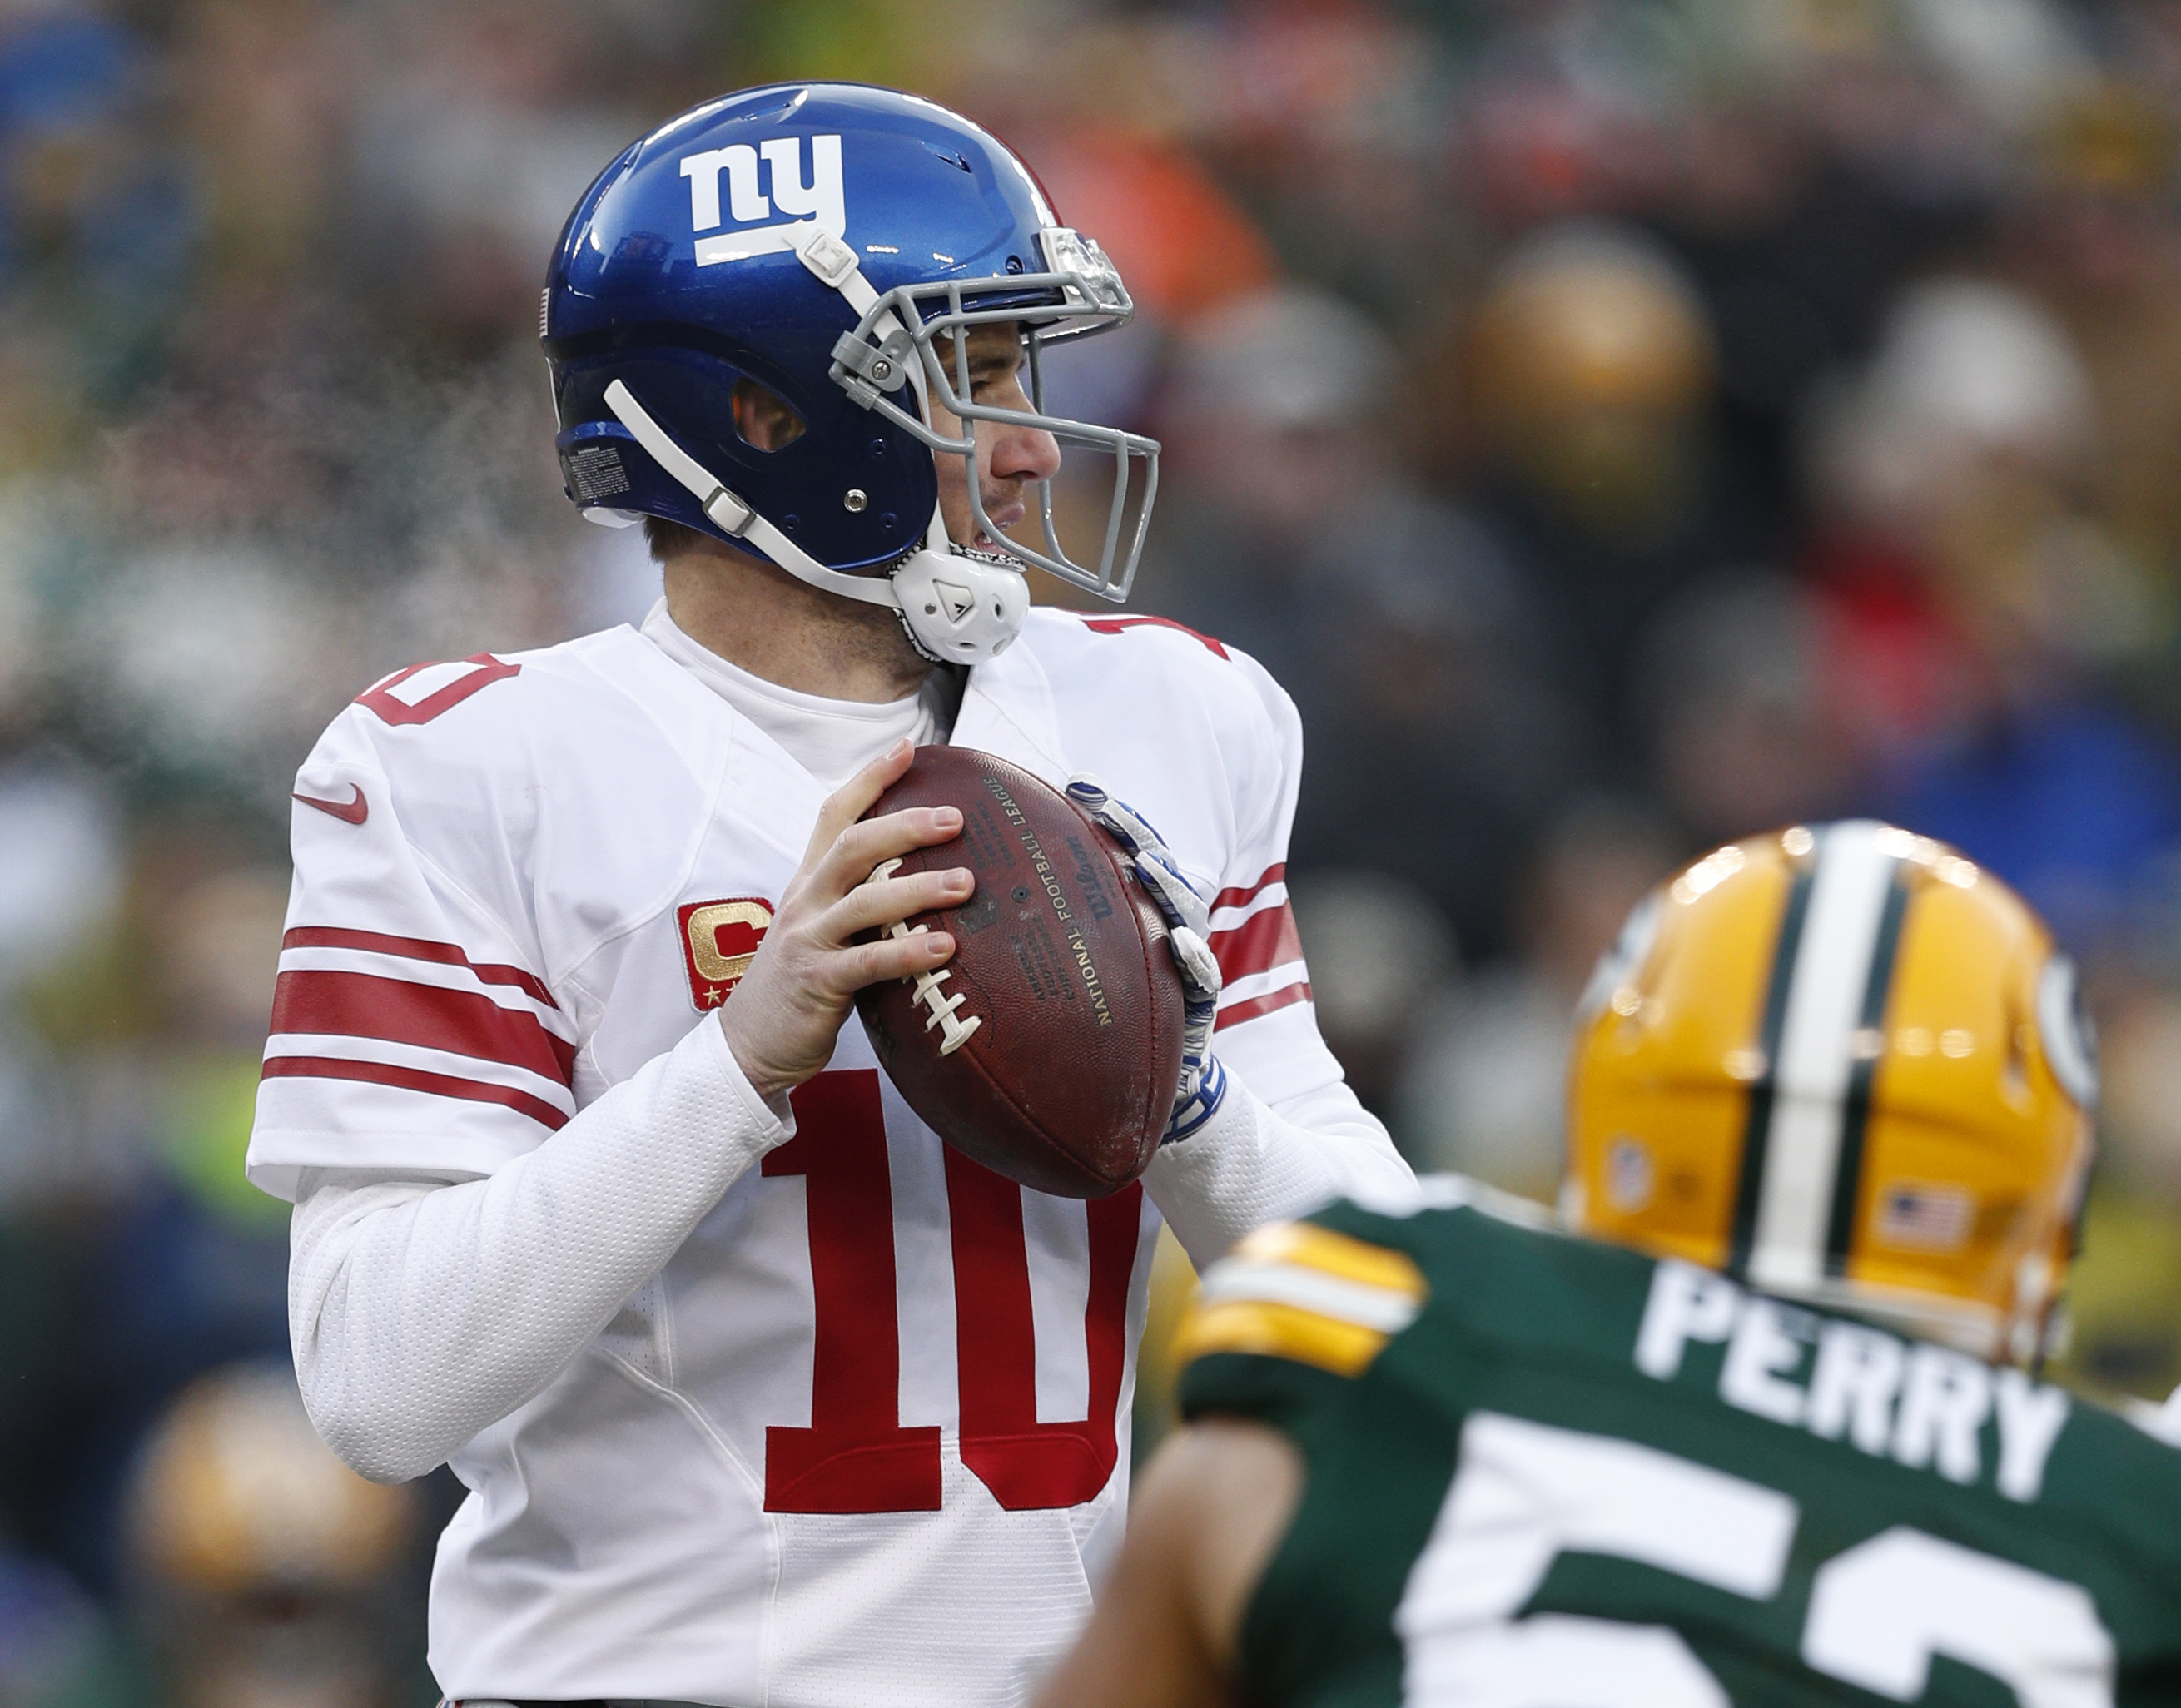 9797798-nfl-nfc-wild-card-new-york-giants-at-green-bay-packers